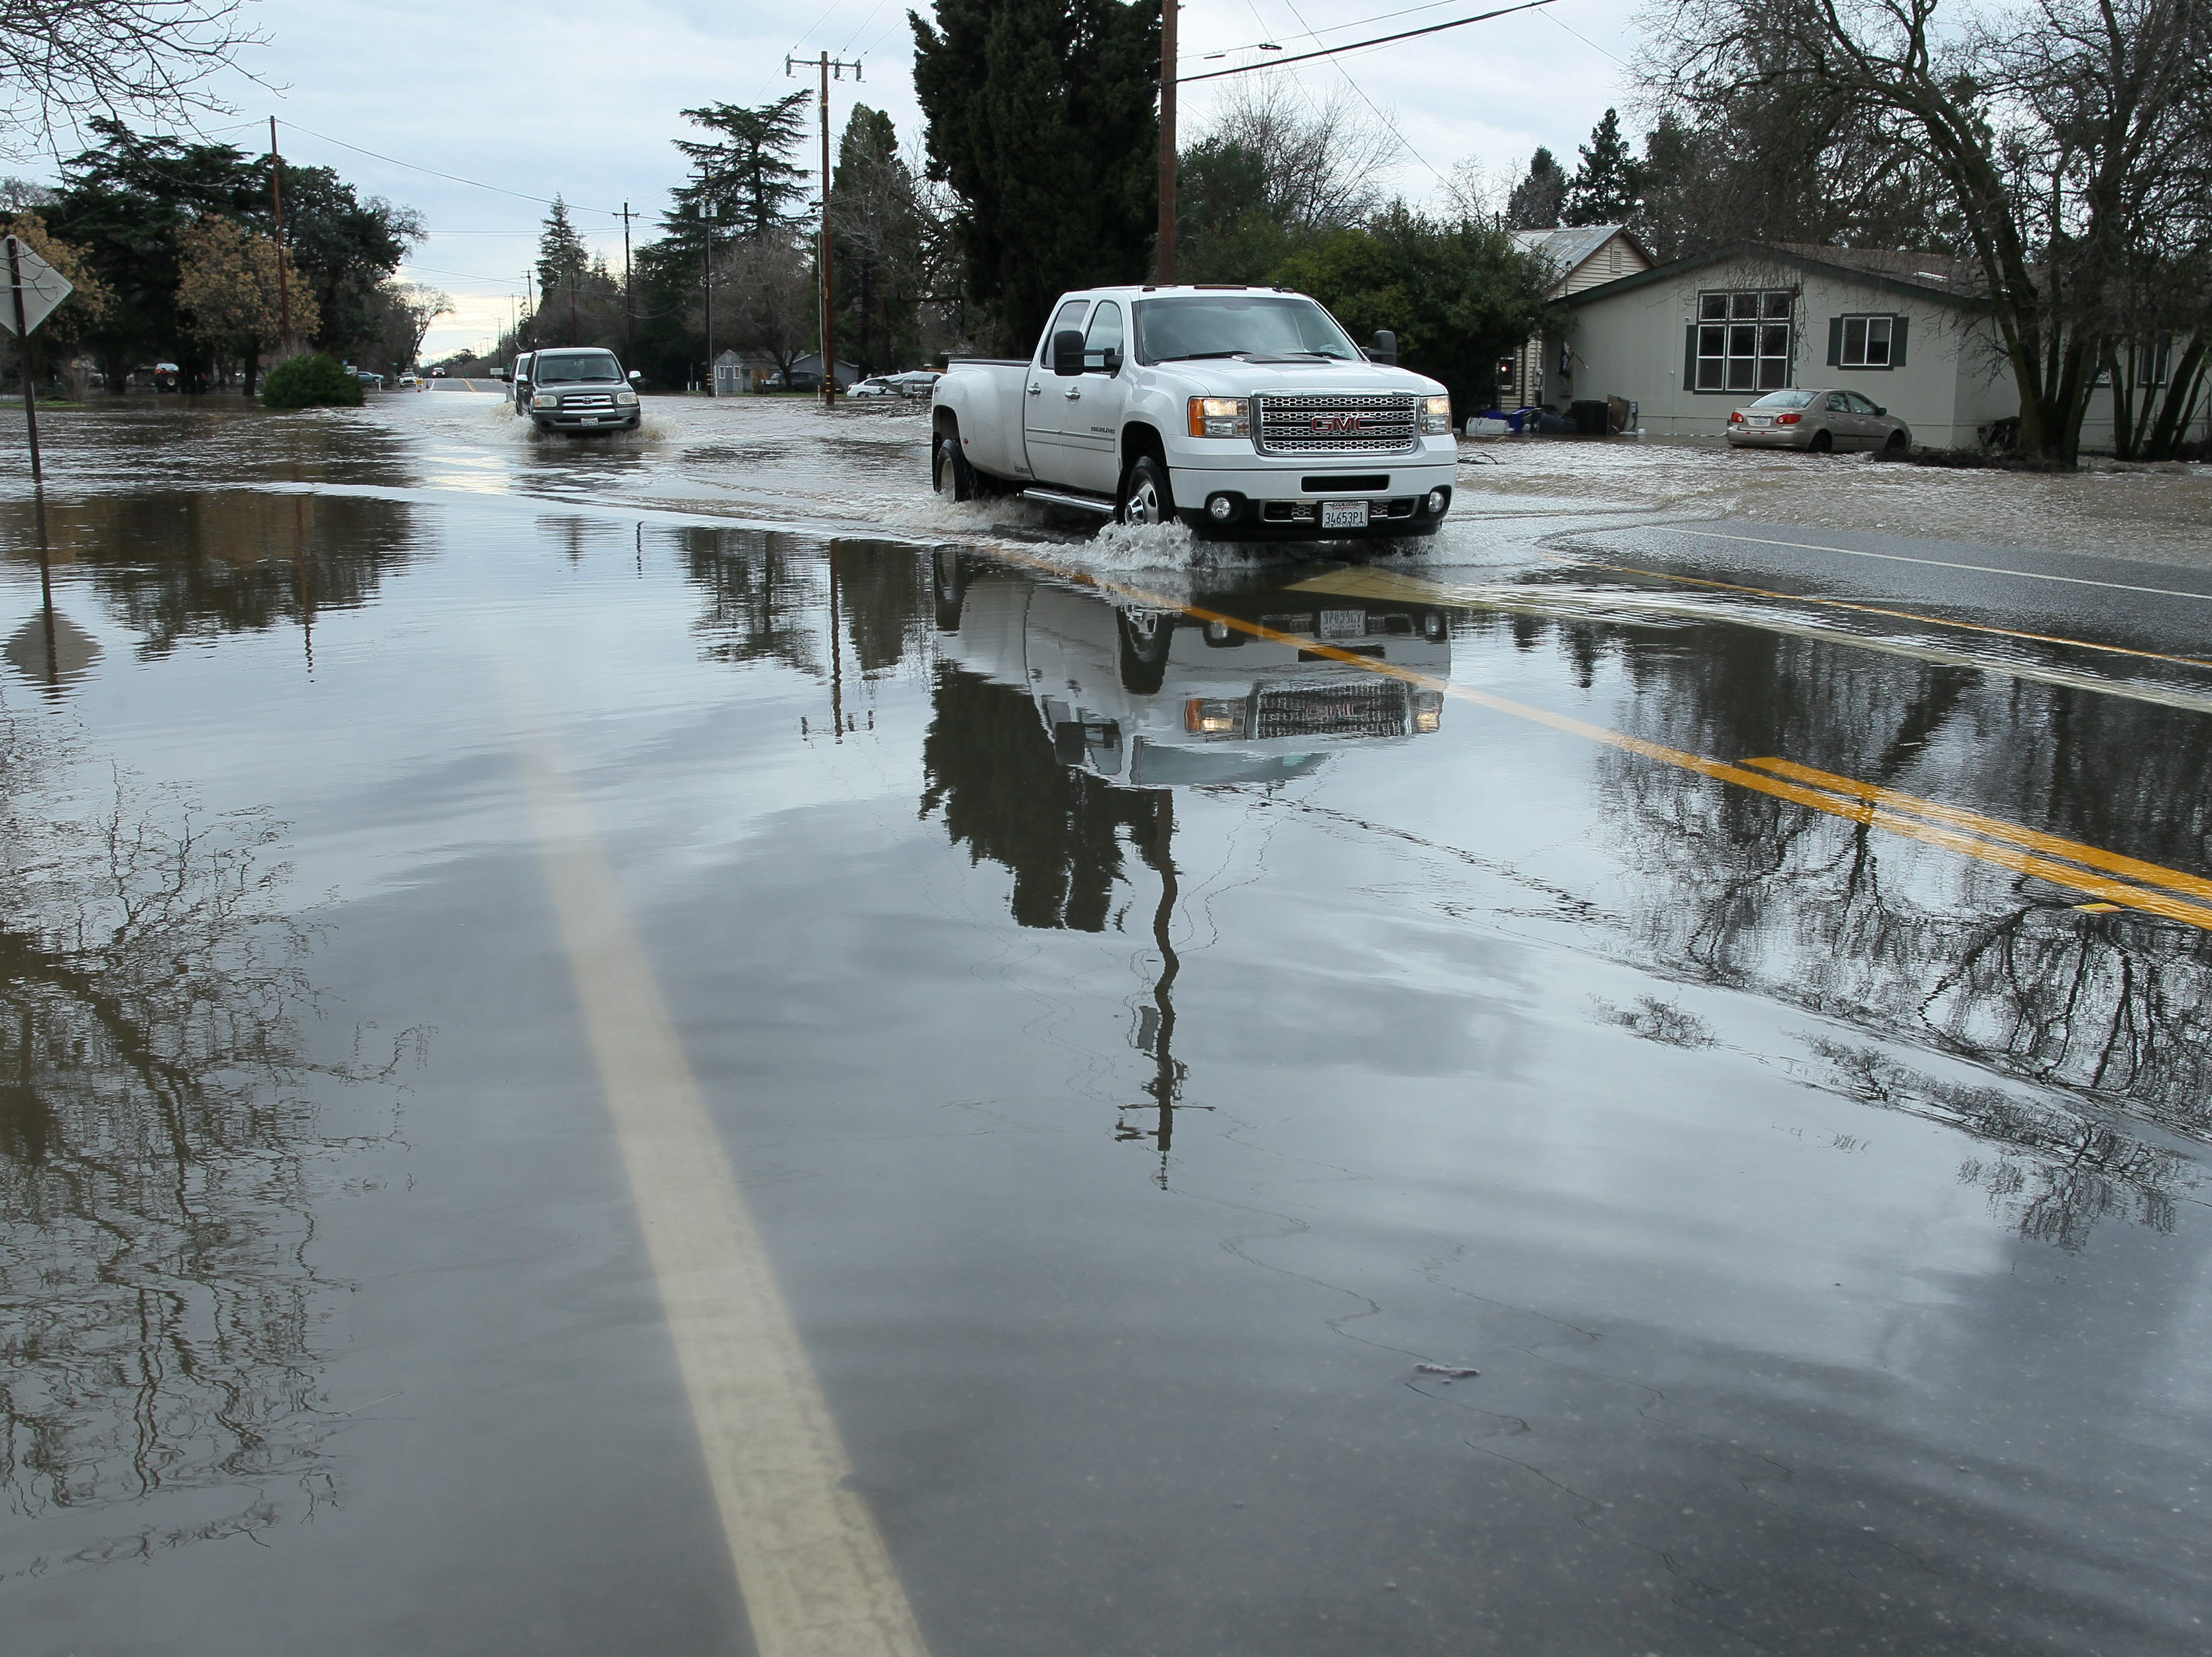 Motorists drive through the water in the flooded section on Hwy. 99 east of Red Bluff.